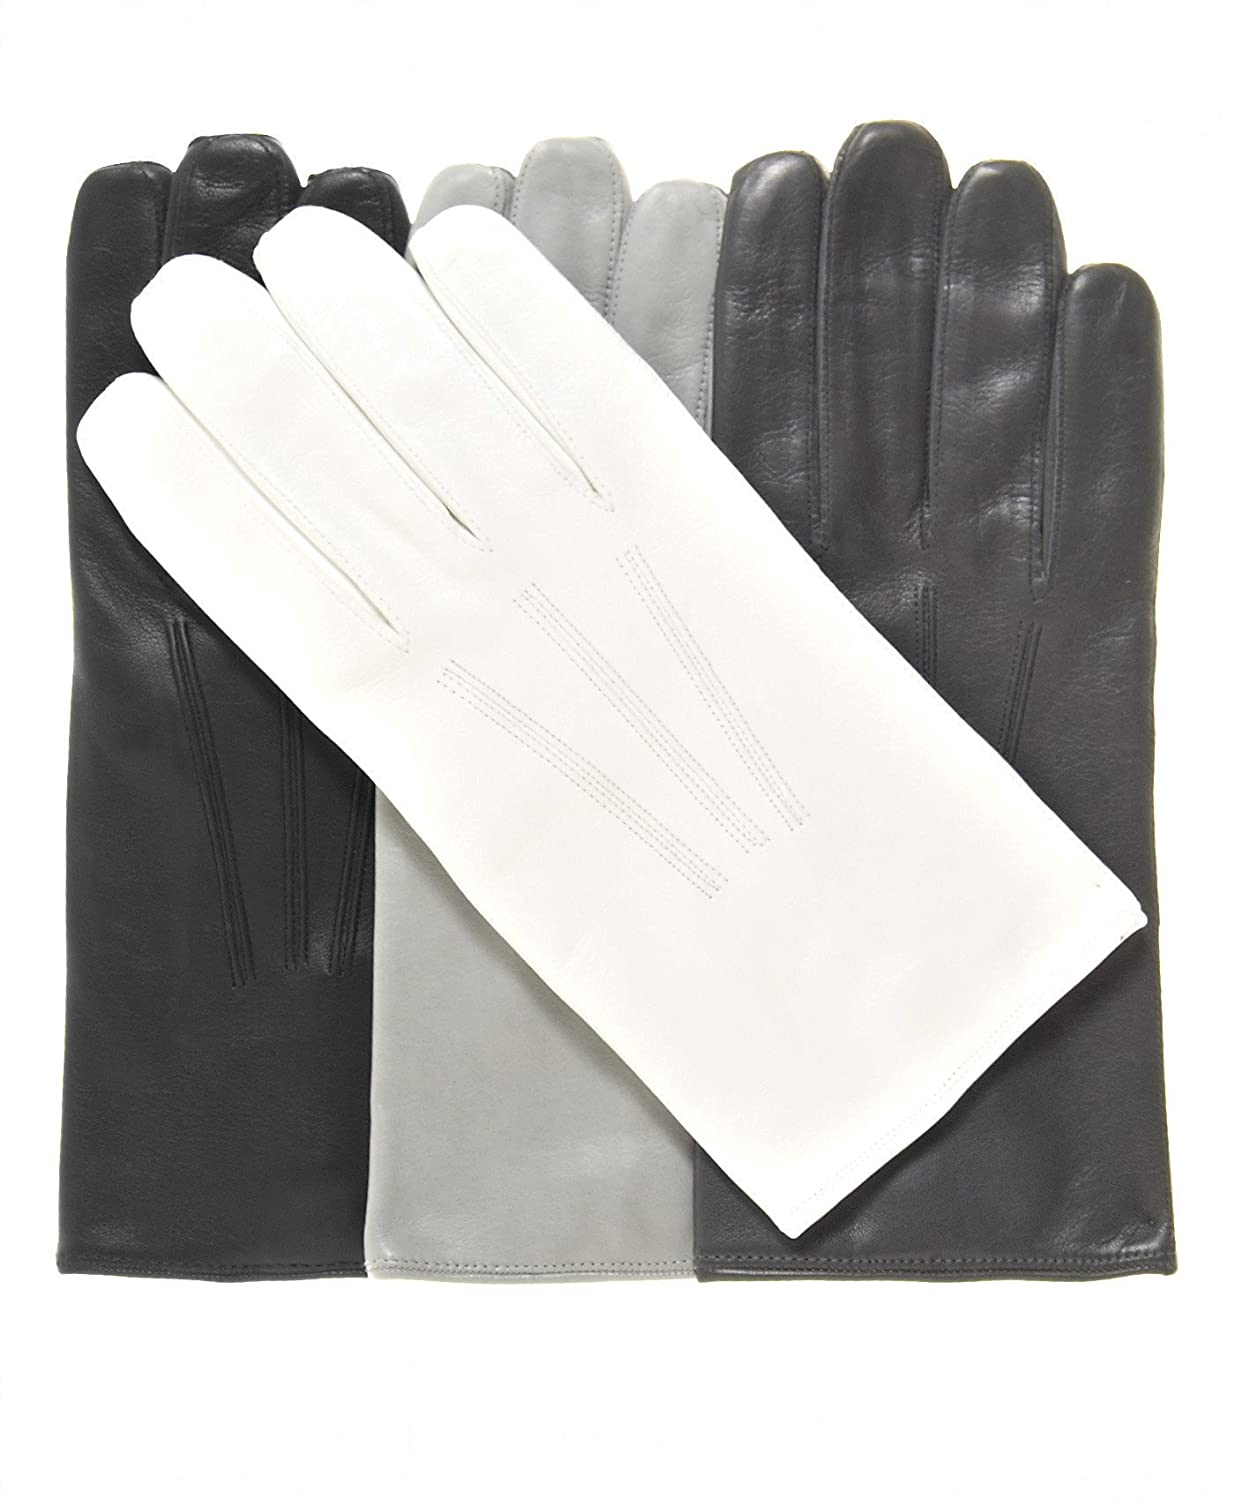 Black leather gloves meaning - History Of Vintage Men S Gloves 1900 To 1960s Mens Lined Lambskin Leather Gloves With Wrist